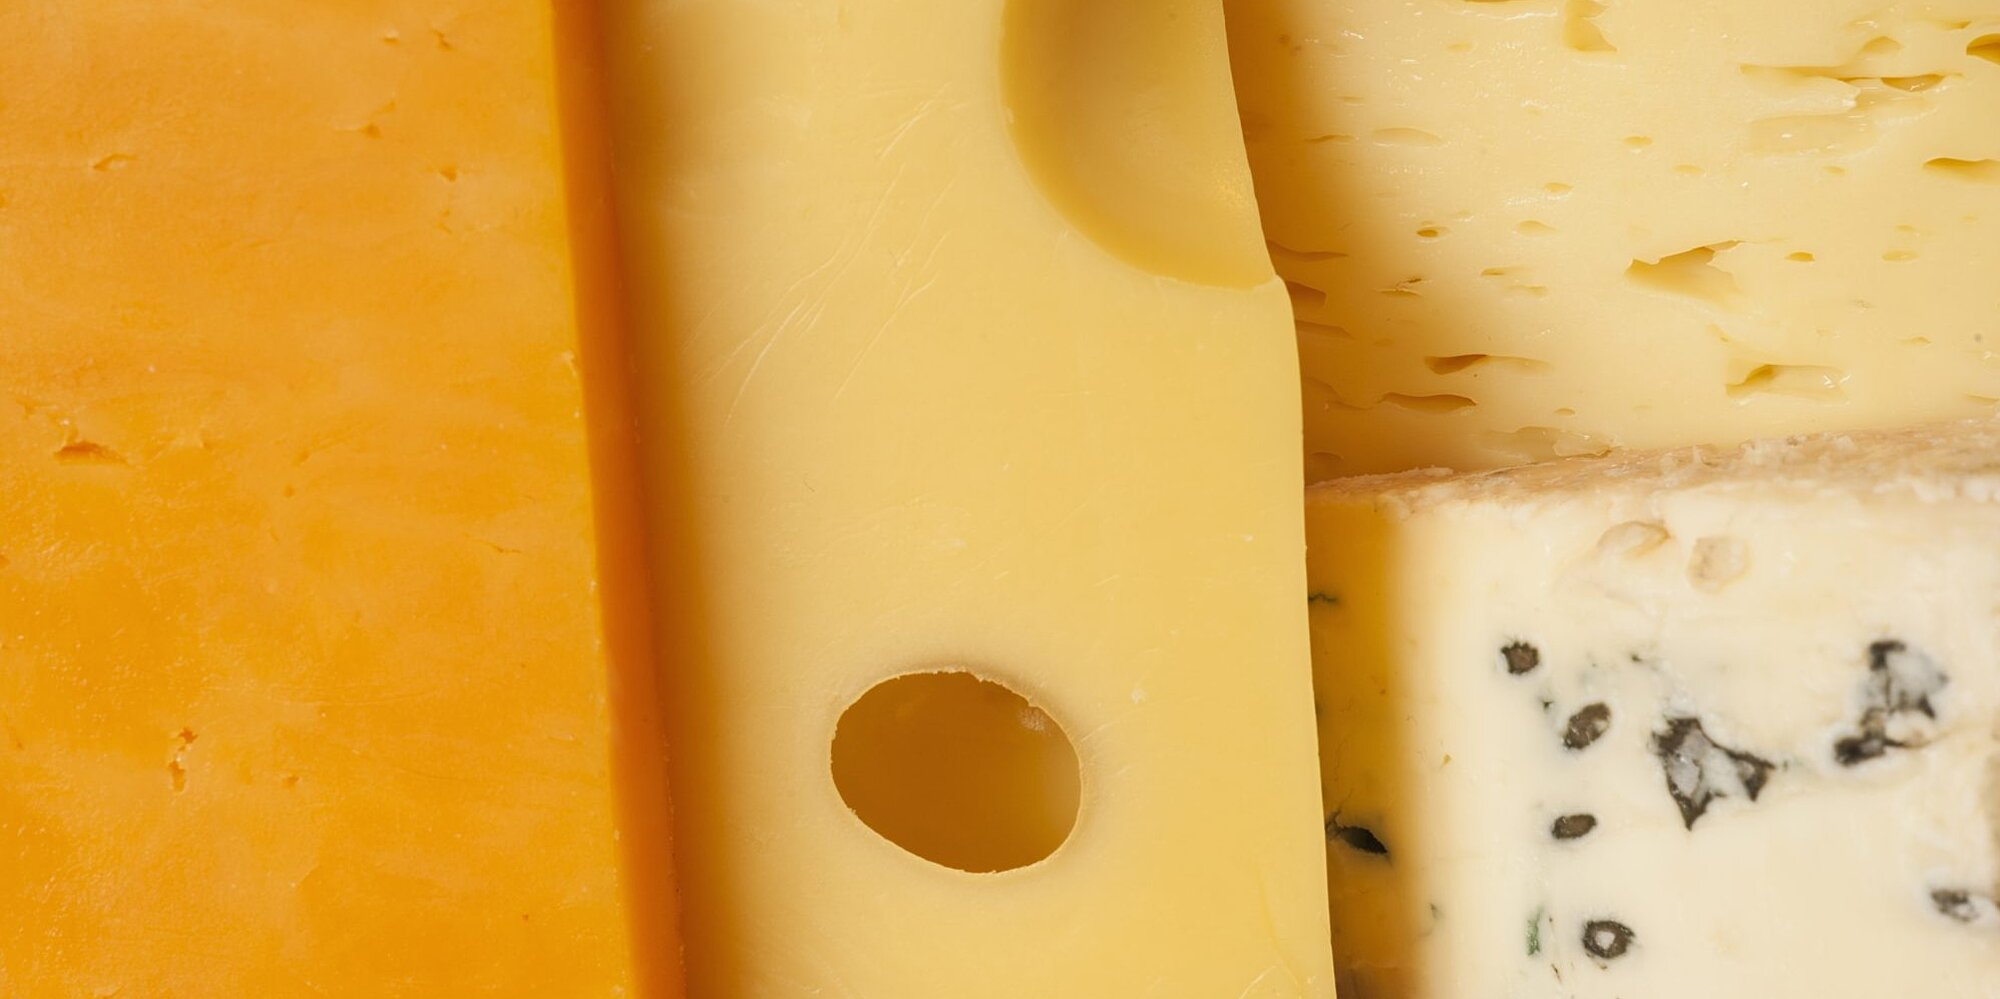 how long does cheese last in the fridge